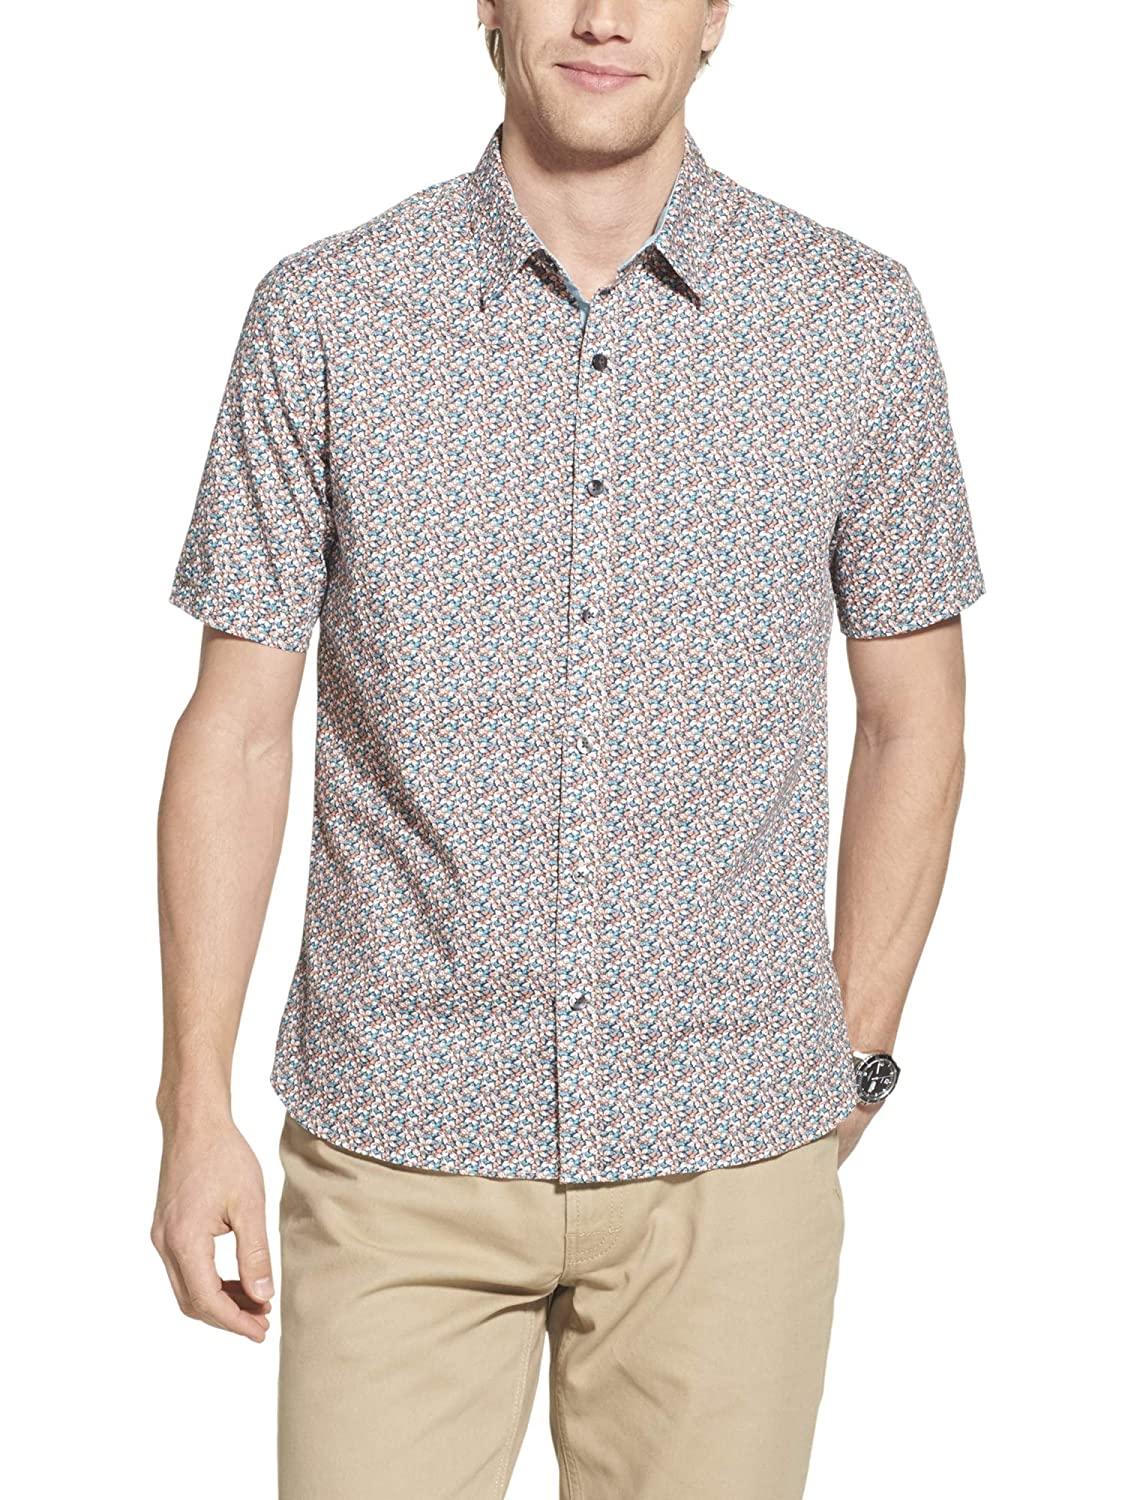 Geoffrey Beene Mens Slim Fit Easy Care Short Sleeve Button Down Shirt